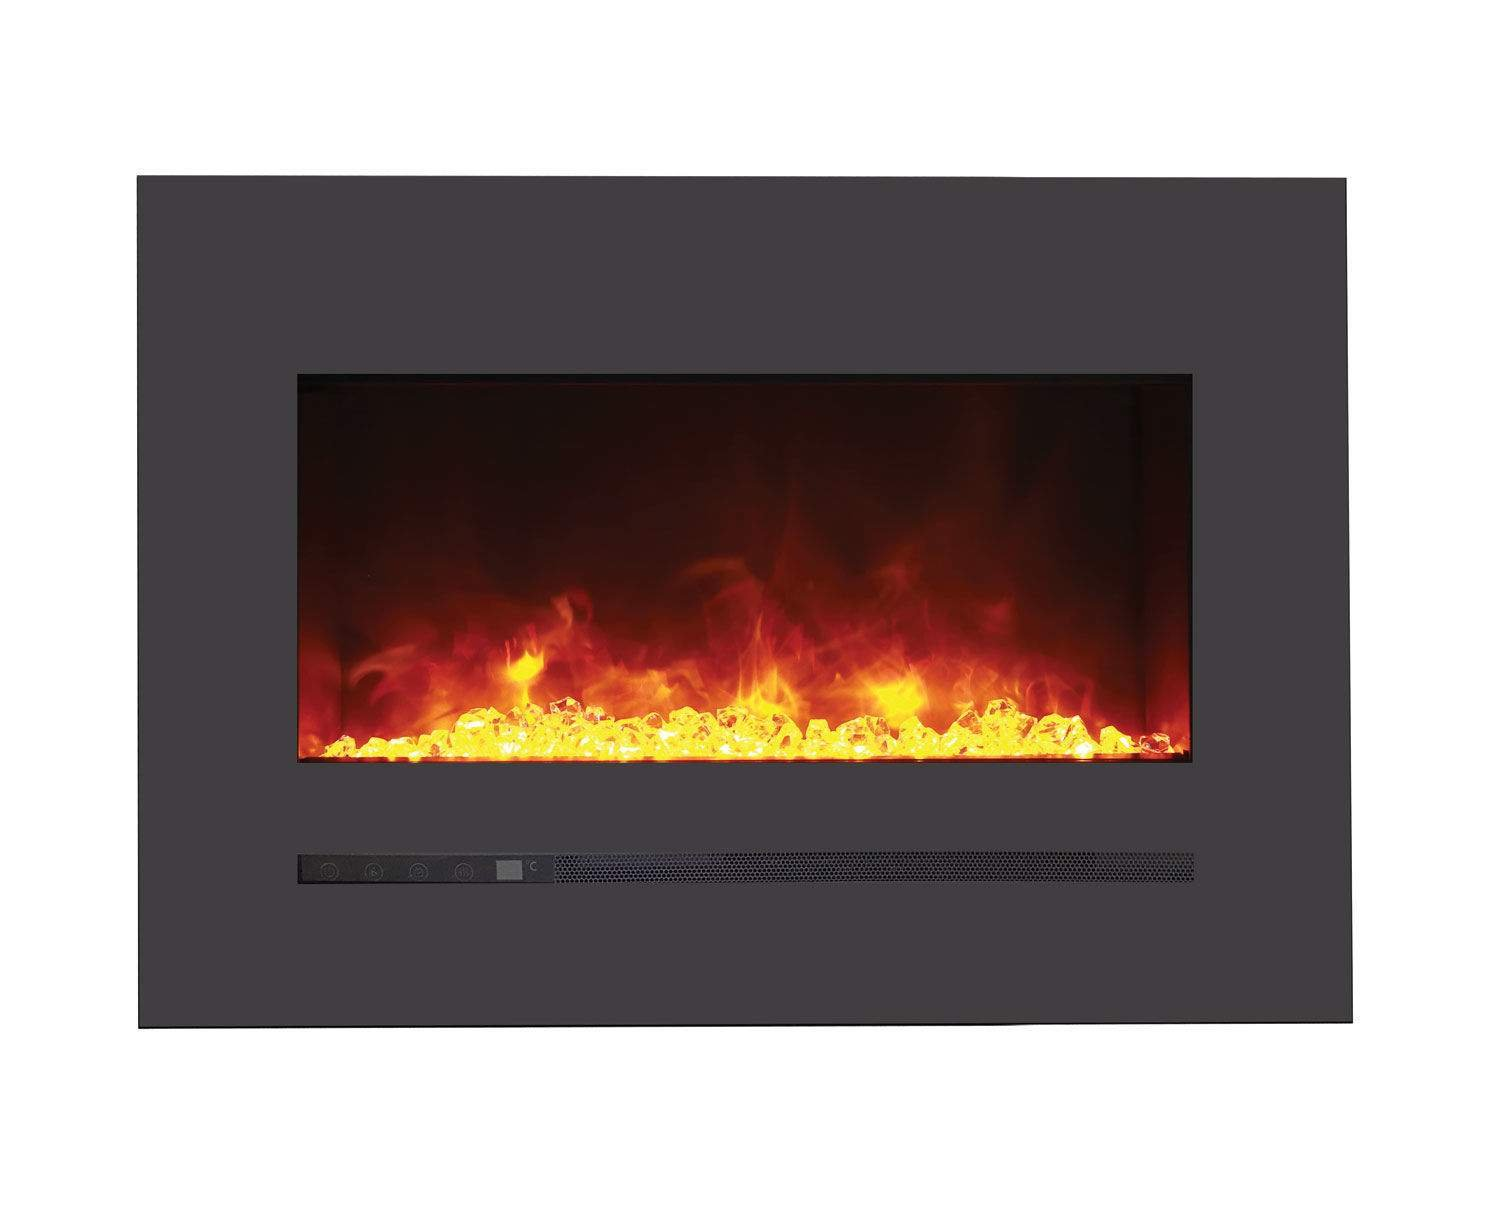 Sierra Flame Electric Fireplace with Surround (WM-FML-26-3223-STL), 26-Inch by Sierra Flame